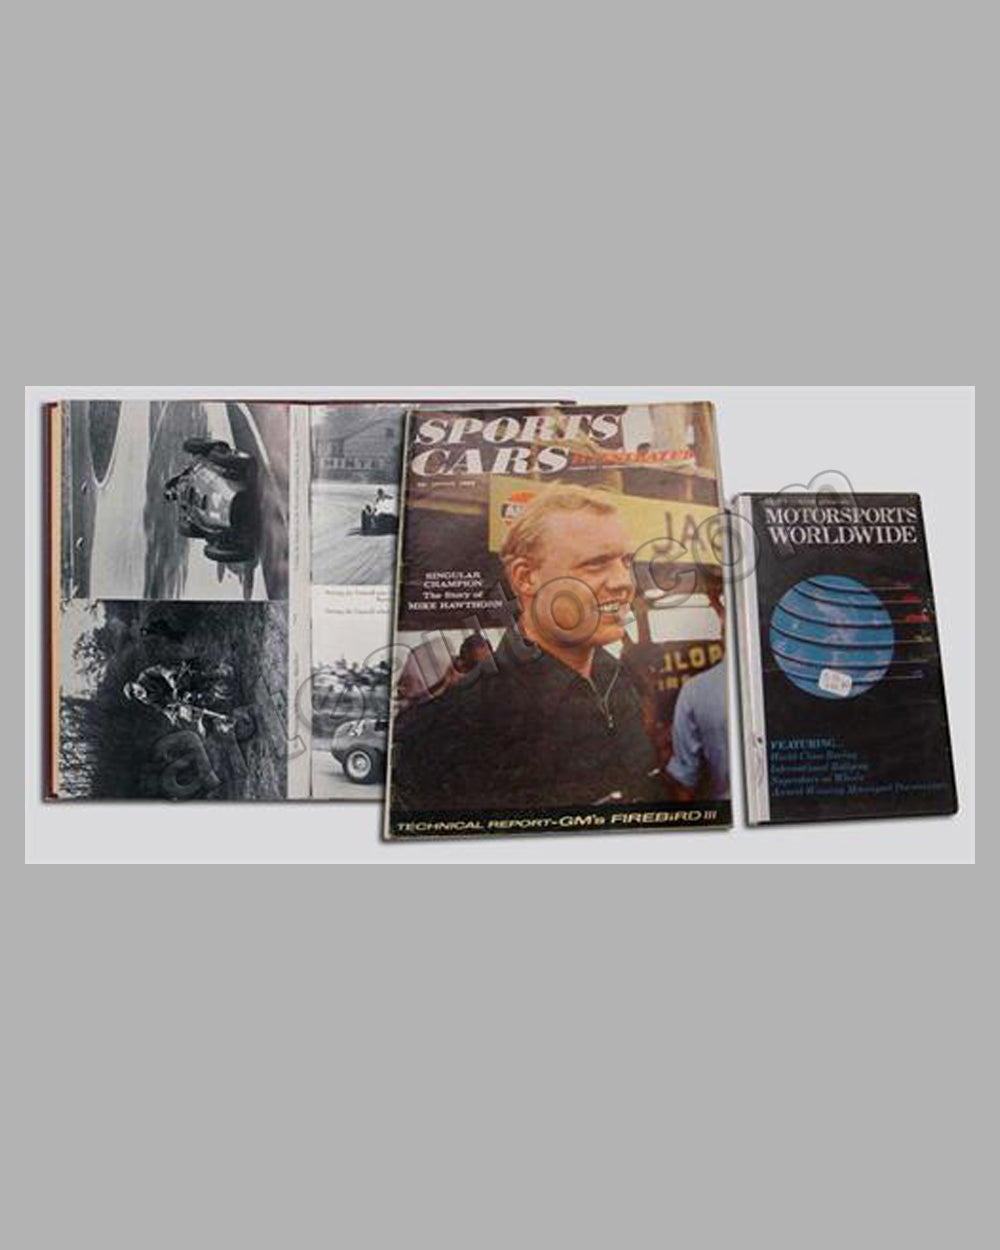 Three Mike Hawthorn items (magazine, video, book)